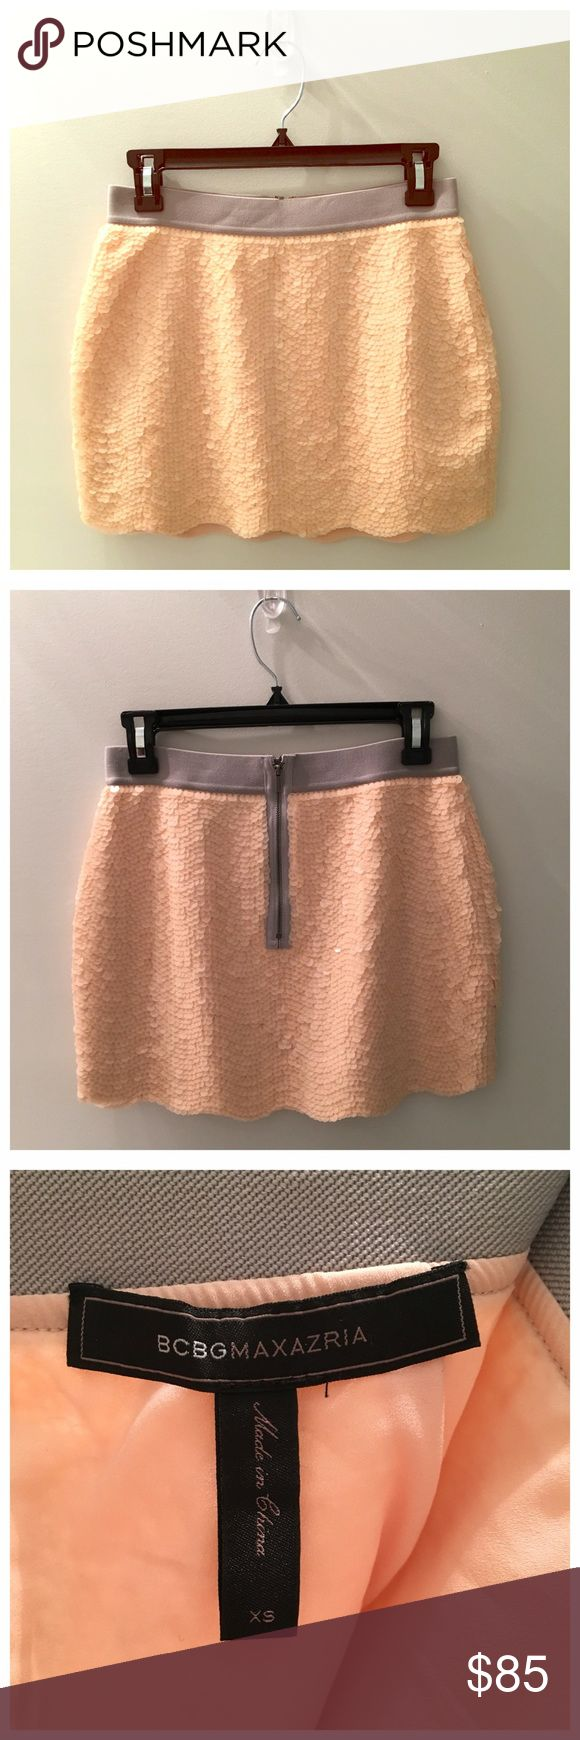 BCBGMaxAzria Peach Sequin Mini Skirt, Sz XS BCBGMaxAzria Peach Sequin Mini Skirt, Size XS. Gray waistband, back zipper, fully lined. Only worn once for a bachelorette party and then dry cleaned - excellent condition. BCBGMaxAzria Skirts Mini